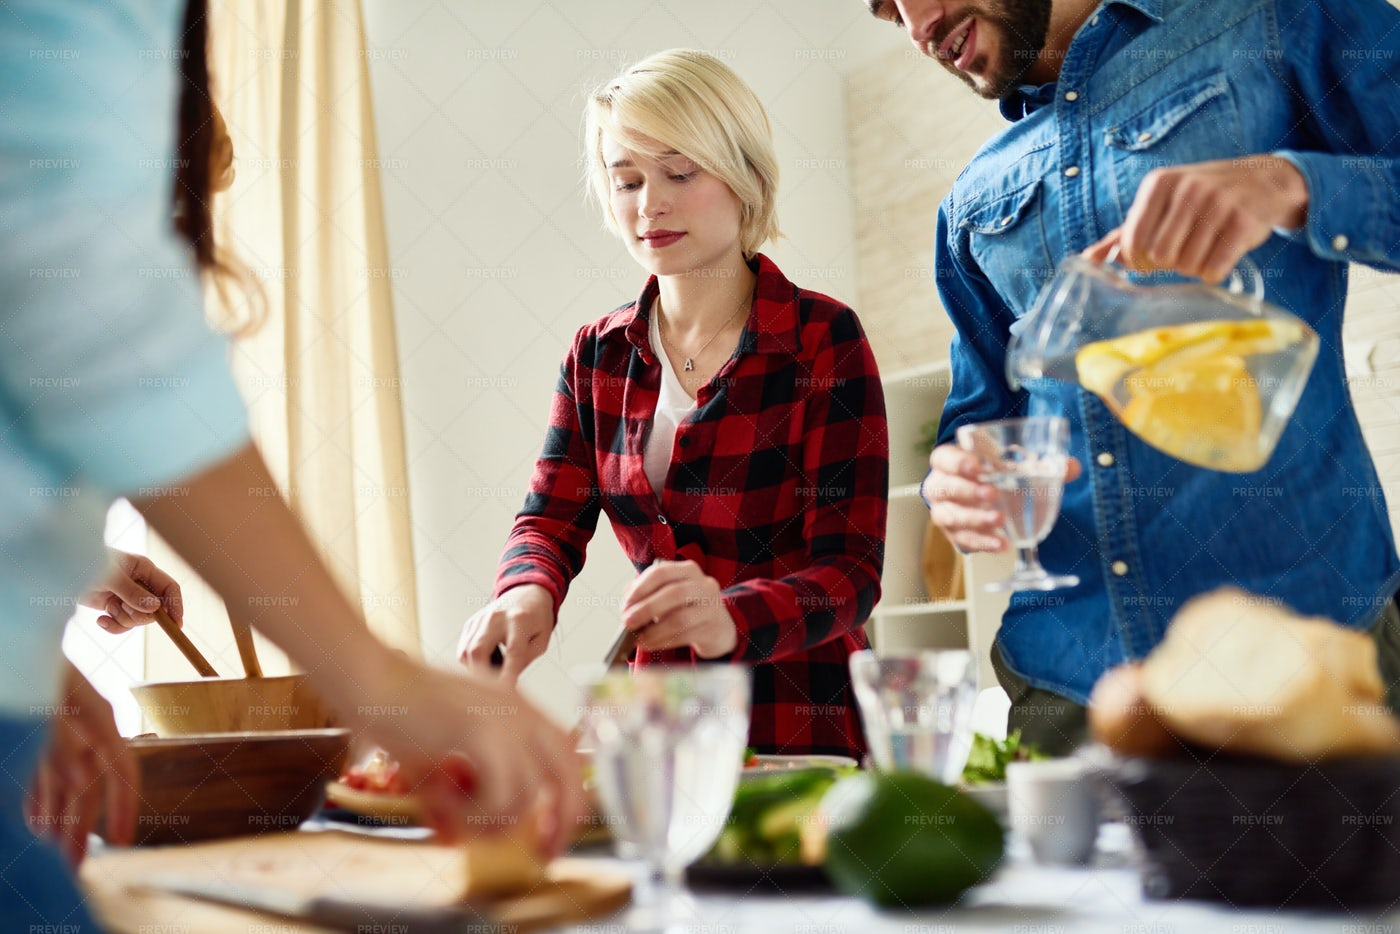 Friends Cooking Dinner Together: Stock Photos